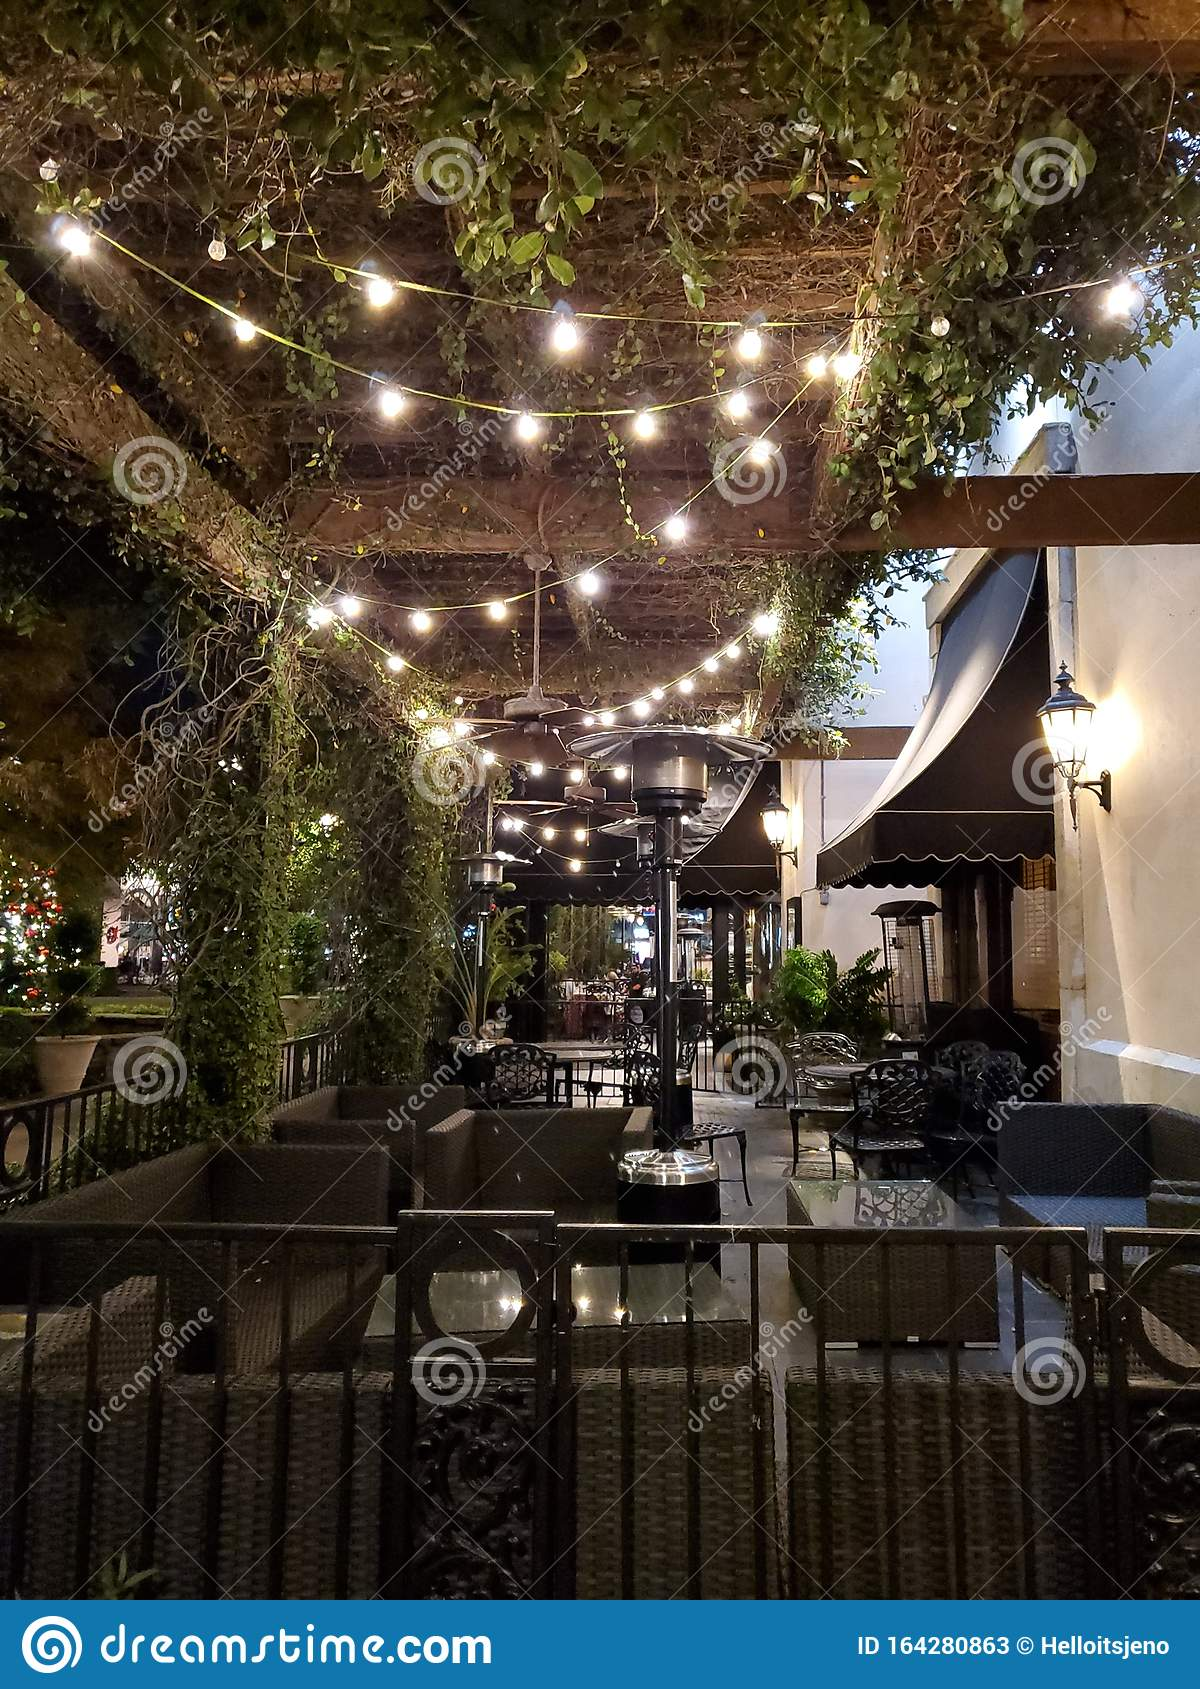 Outdoor Seating At Fancy Restaurant With String Lights Stock Image Image Of Restaurant Outdoor 164280863